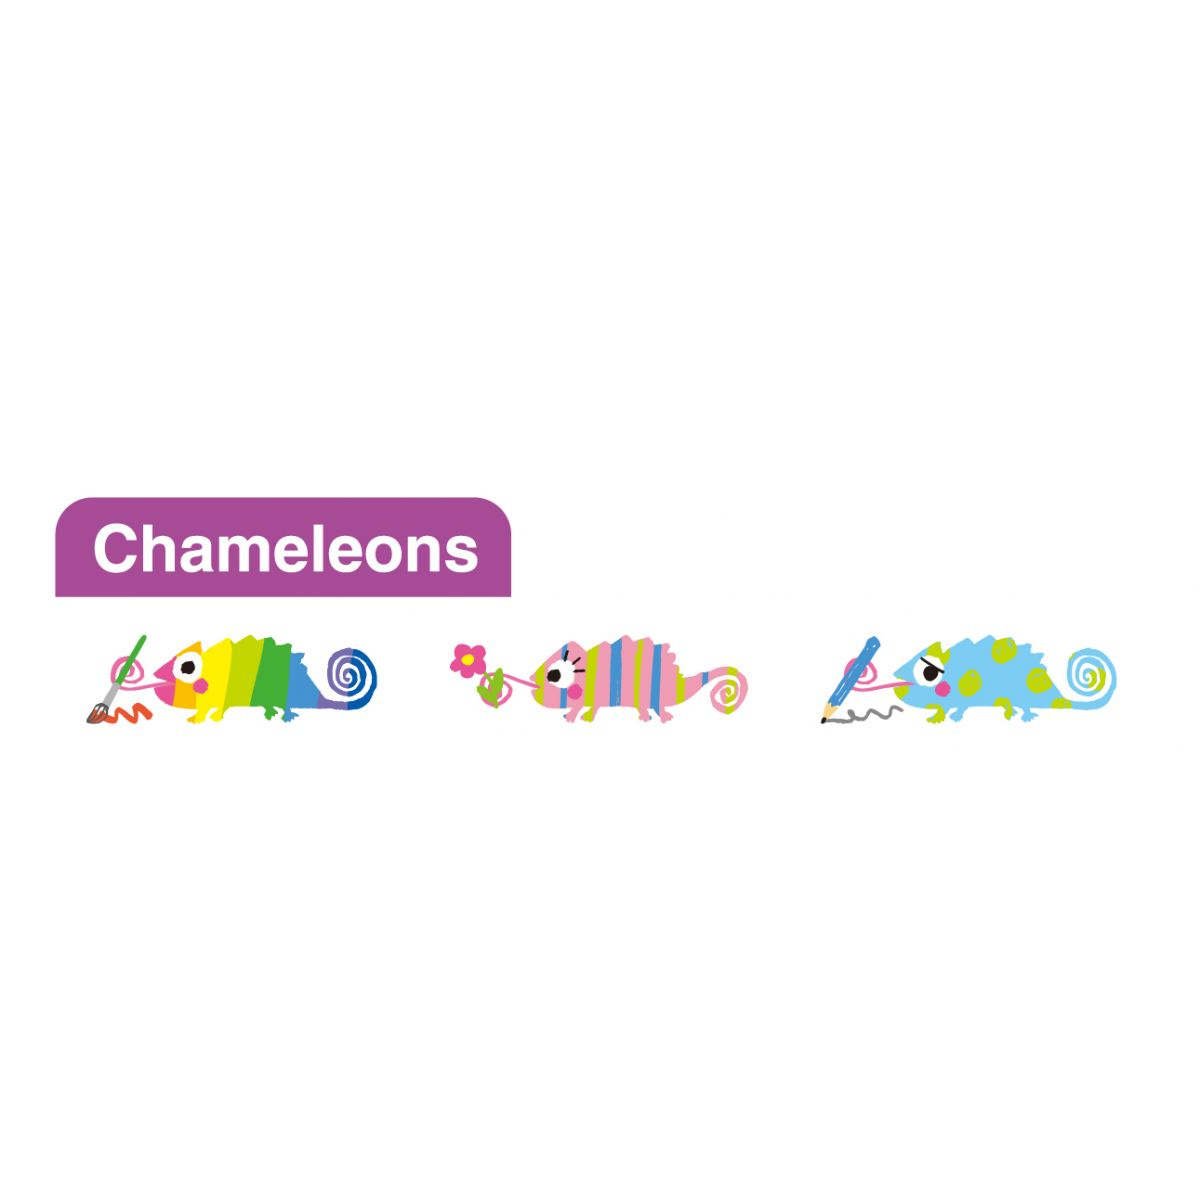 Fita Decorativa - Deco Rush - Chameleons 2 -PLUS